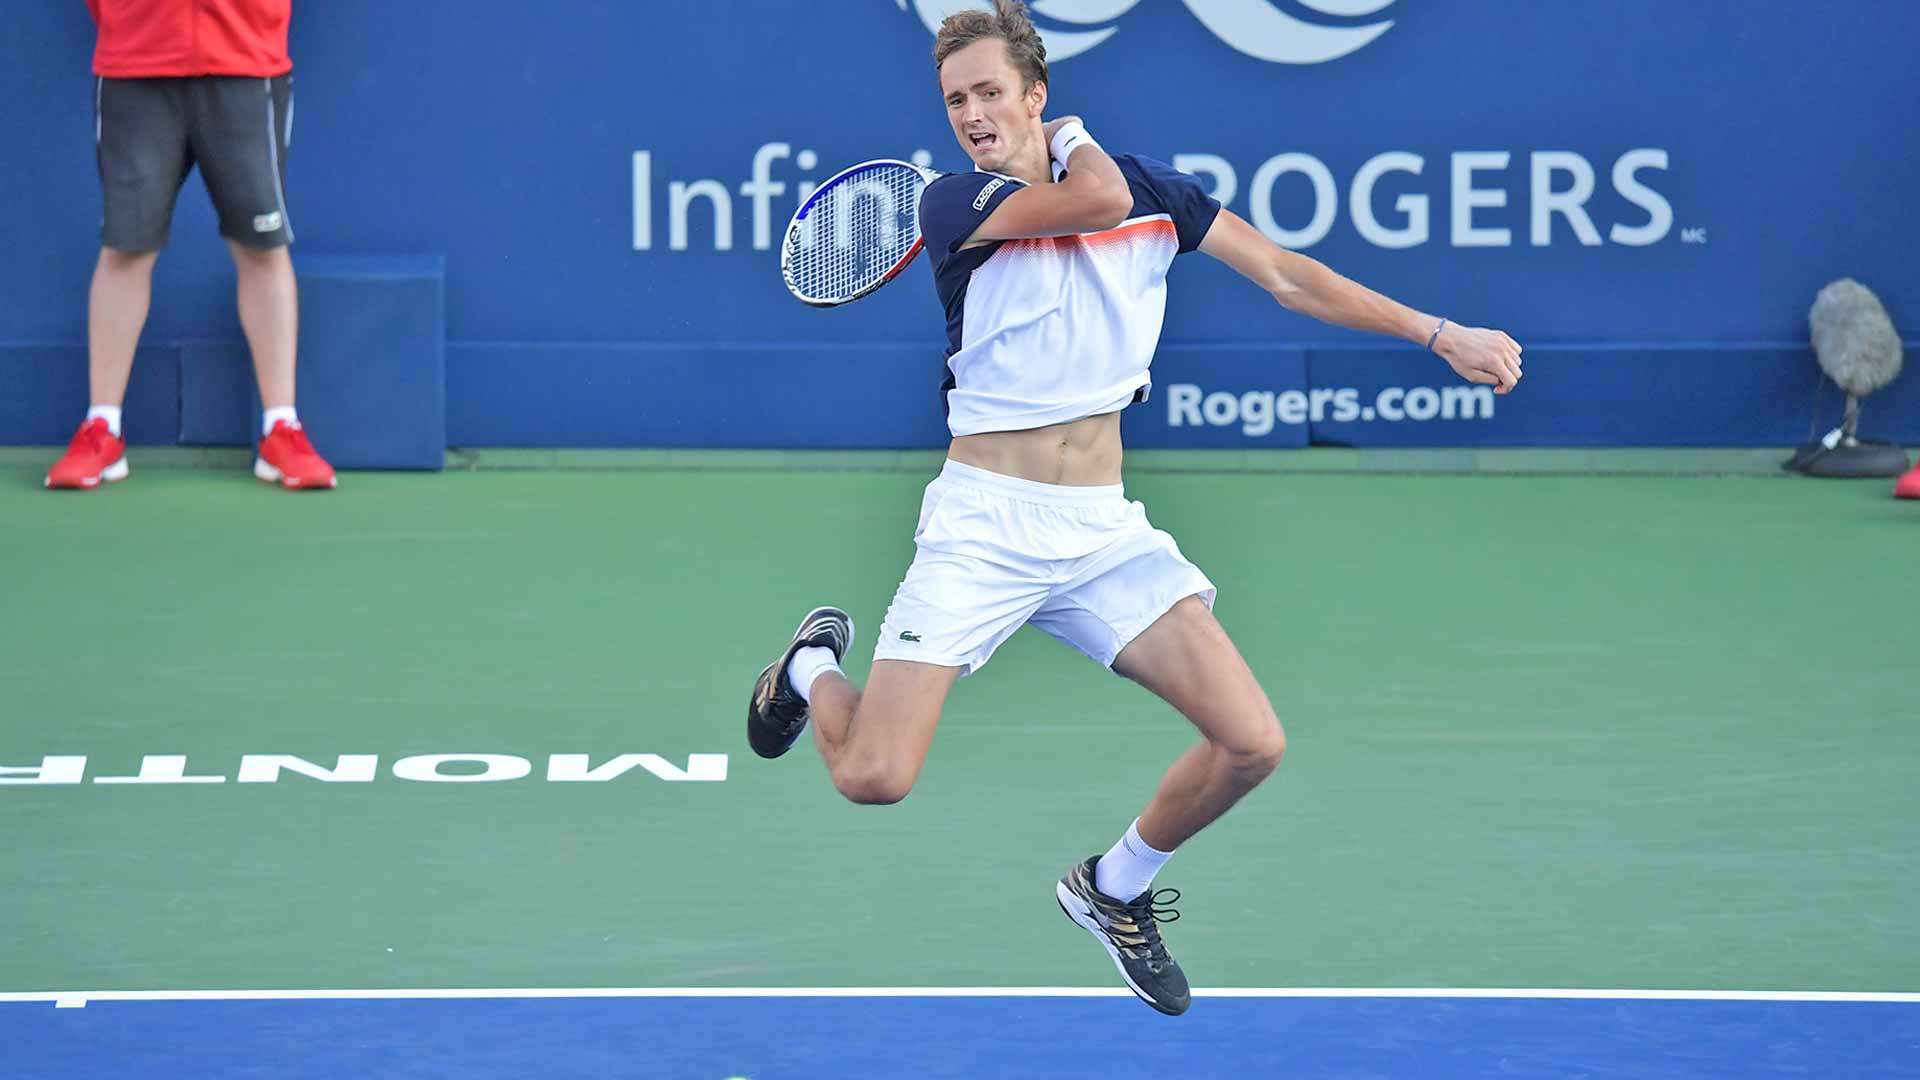 <a href='https://www.atptour.com/en/players/daniil-medvedev/mm58/overview'>Daniil Medvedev</a> faces <a href='https://www.atptour.com/en/players/karen-khachanov/ke29/overview'>Karen Khachanov</a> during the Coupe Rogers semi-finals on Saturday